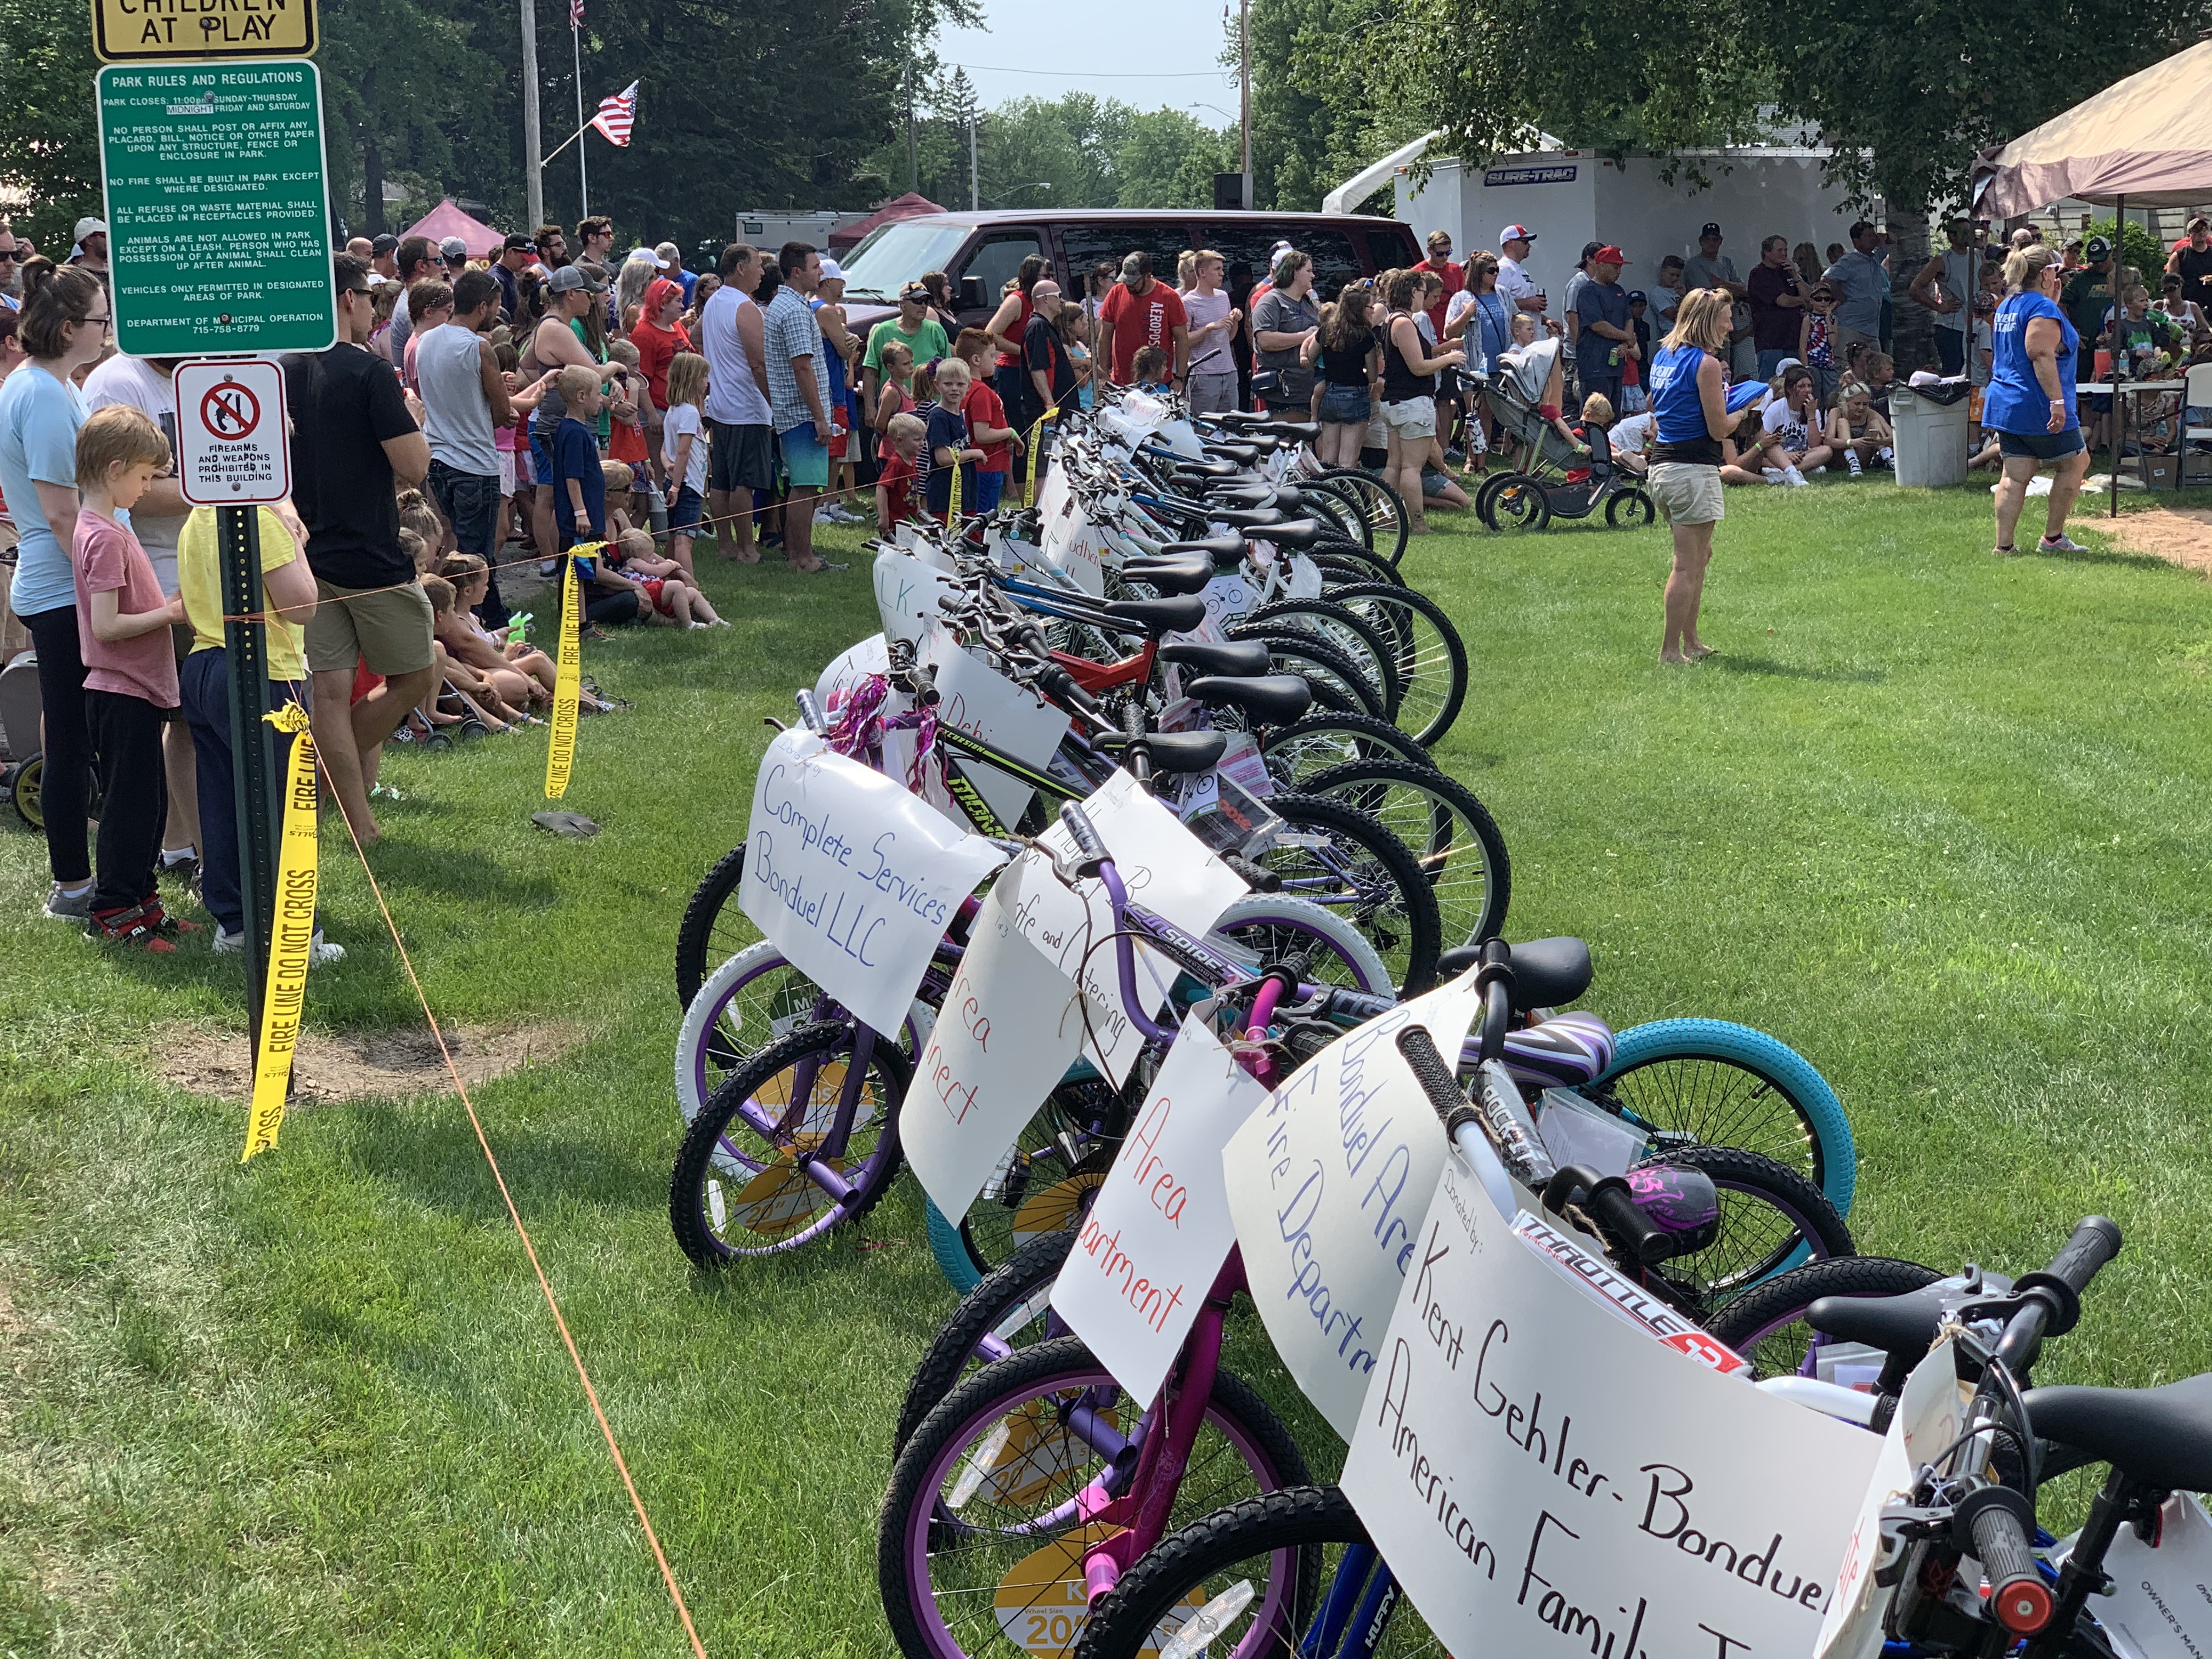 Visitors wait in anticipation of the bike raffle July 4 at Village Park in Bonduel. More than 100 bikes were donated for families to win at the event.Luke Reimer | NEW Media